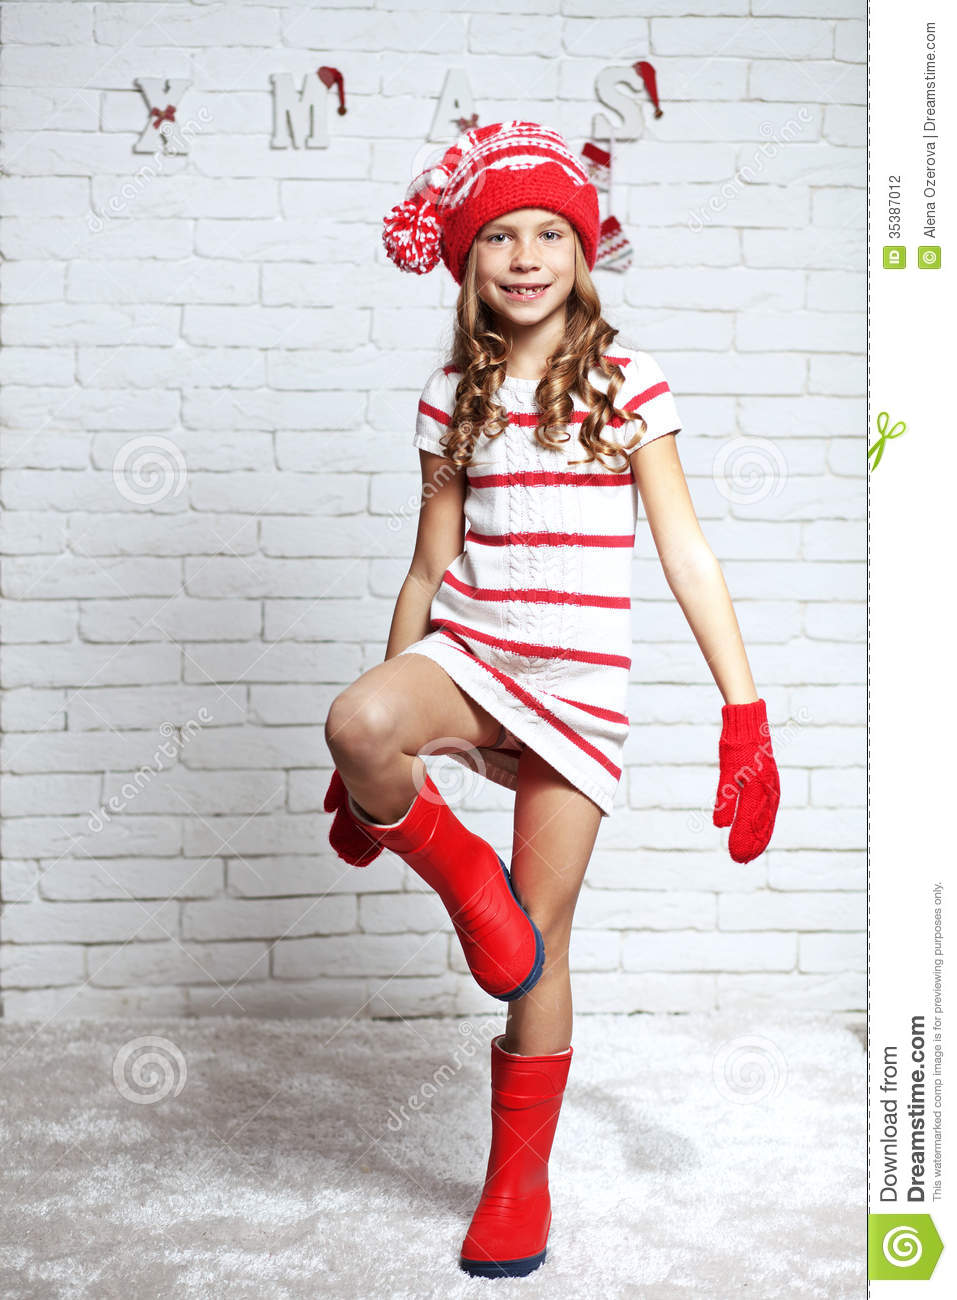 Girl Fashion Magazine: Christmas Stock Photo. Image Of Fashion, Posing, Person